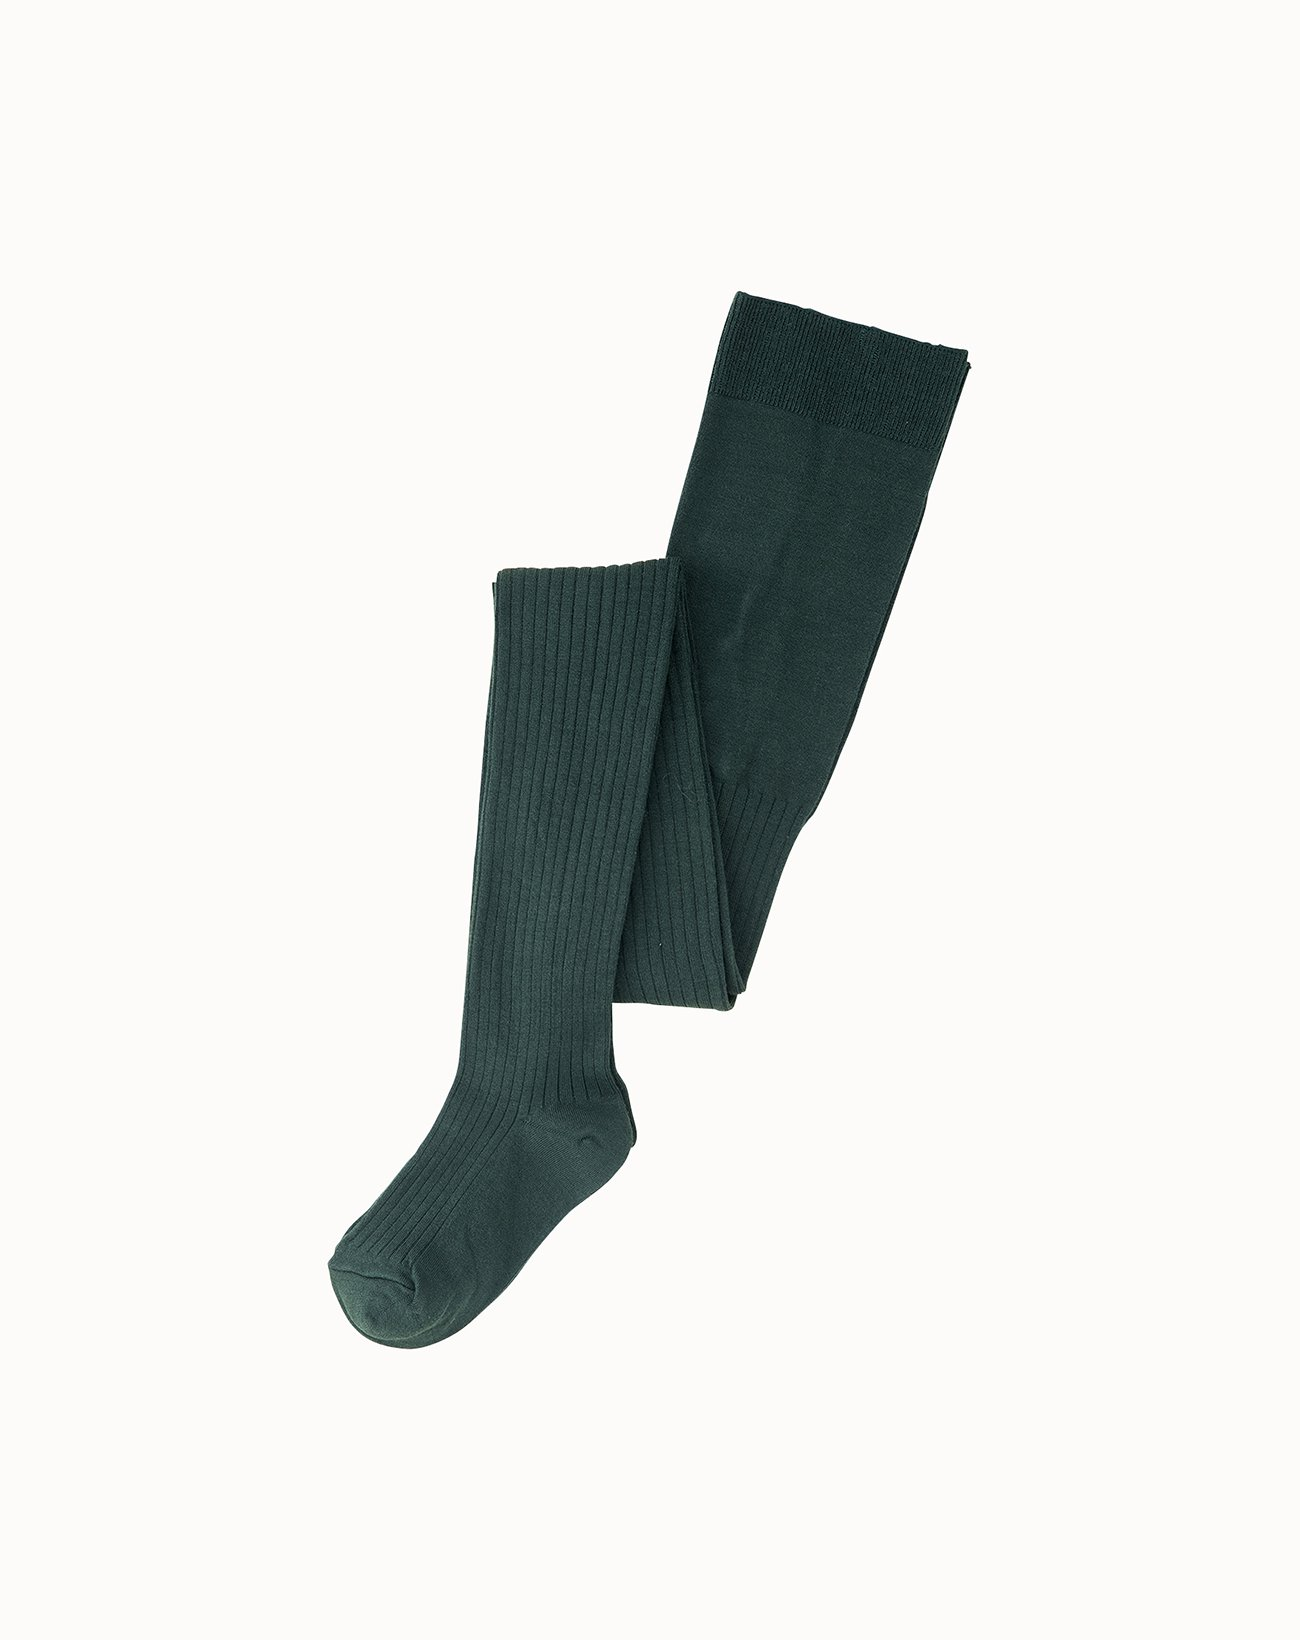 leur logette - Silk Rib Tights - Green